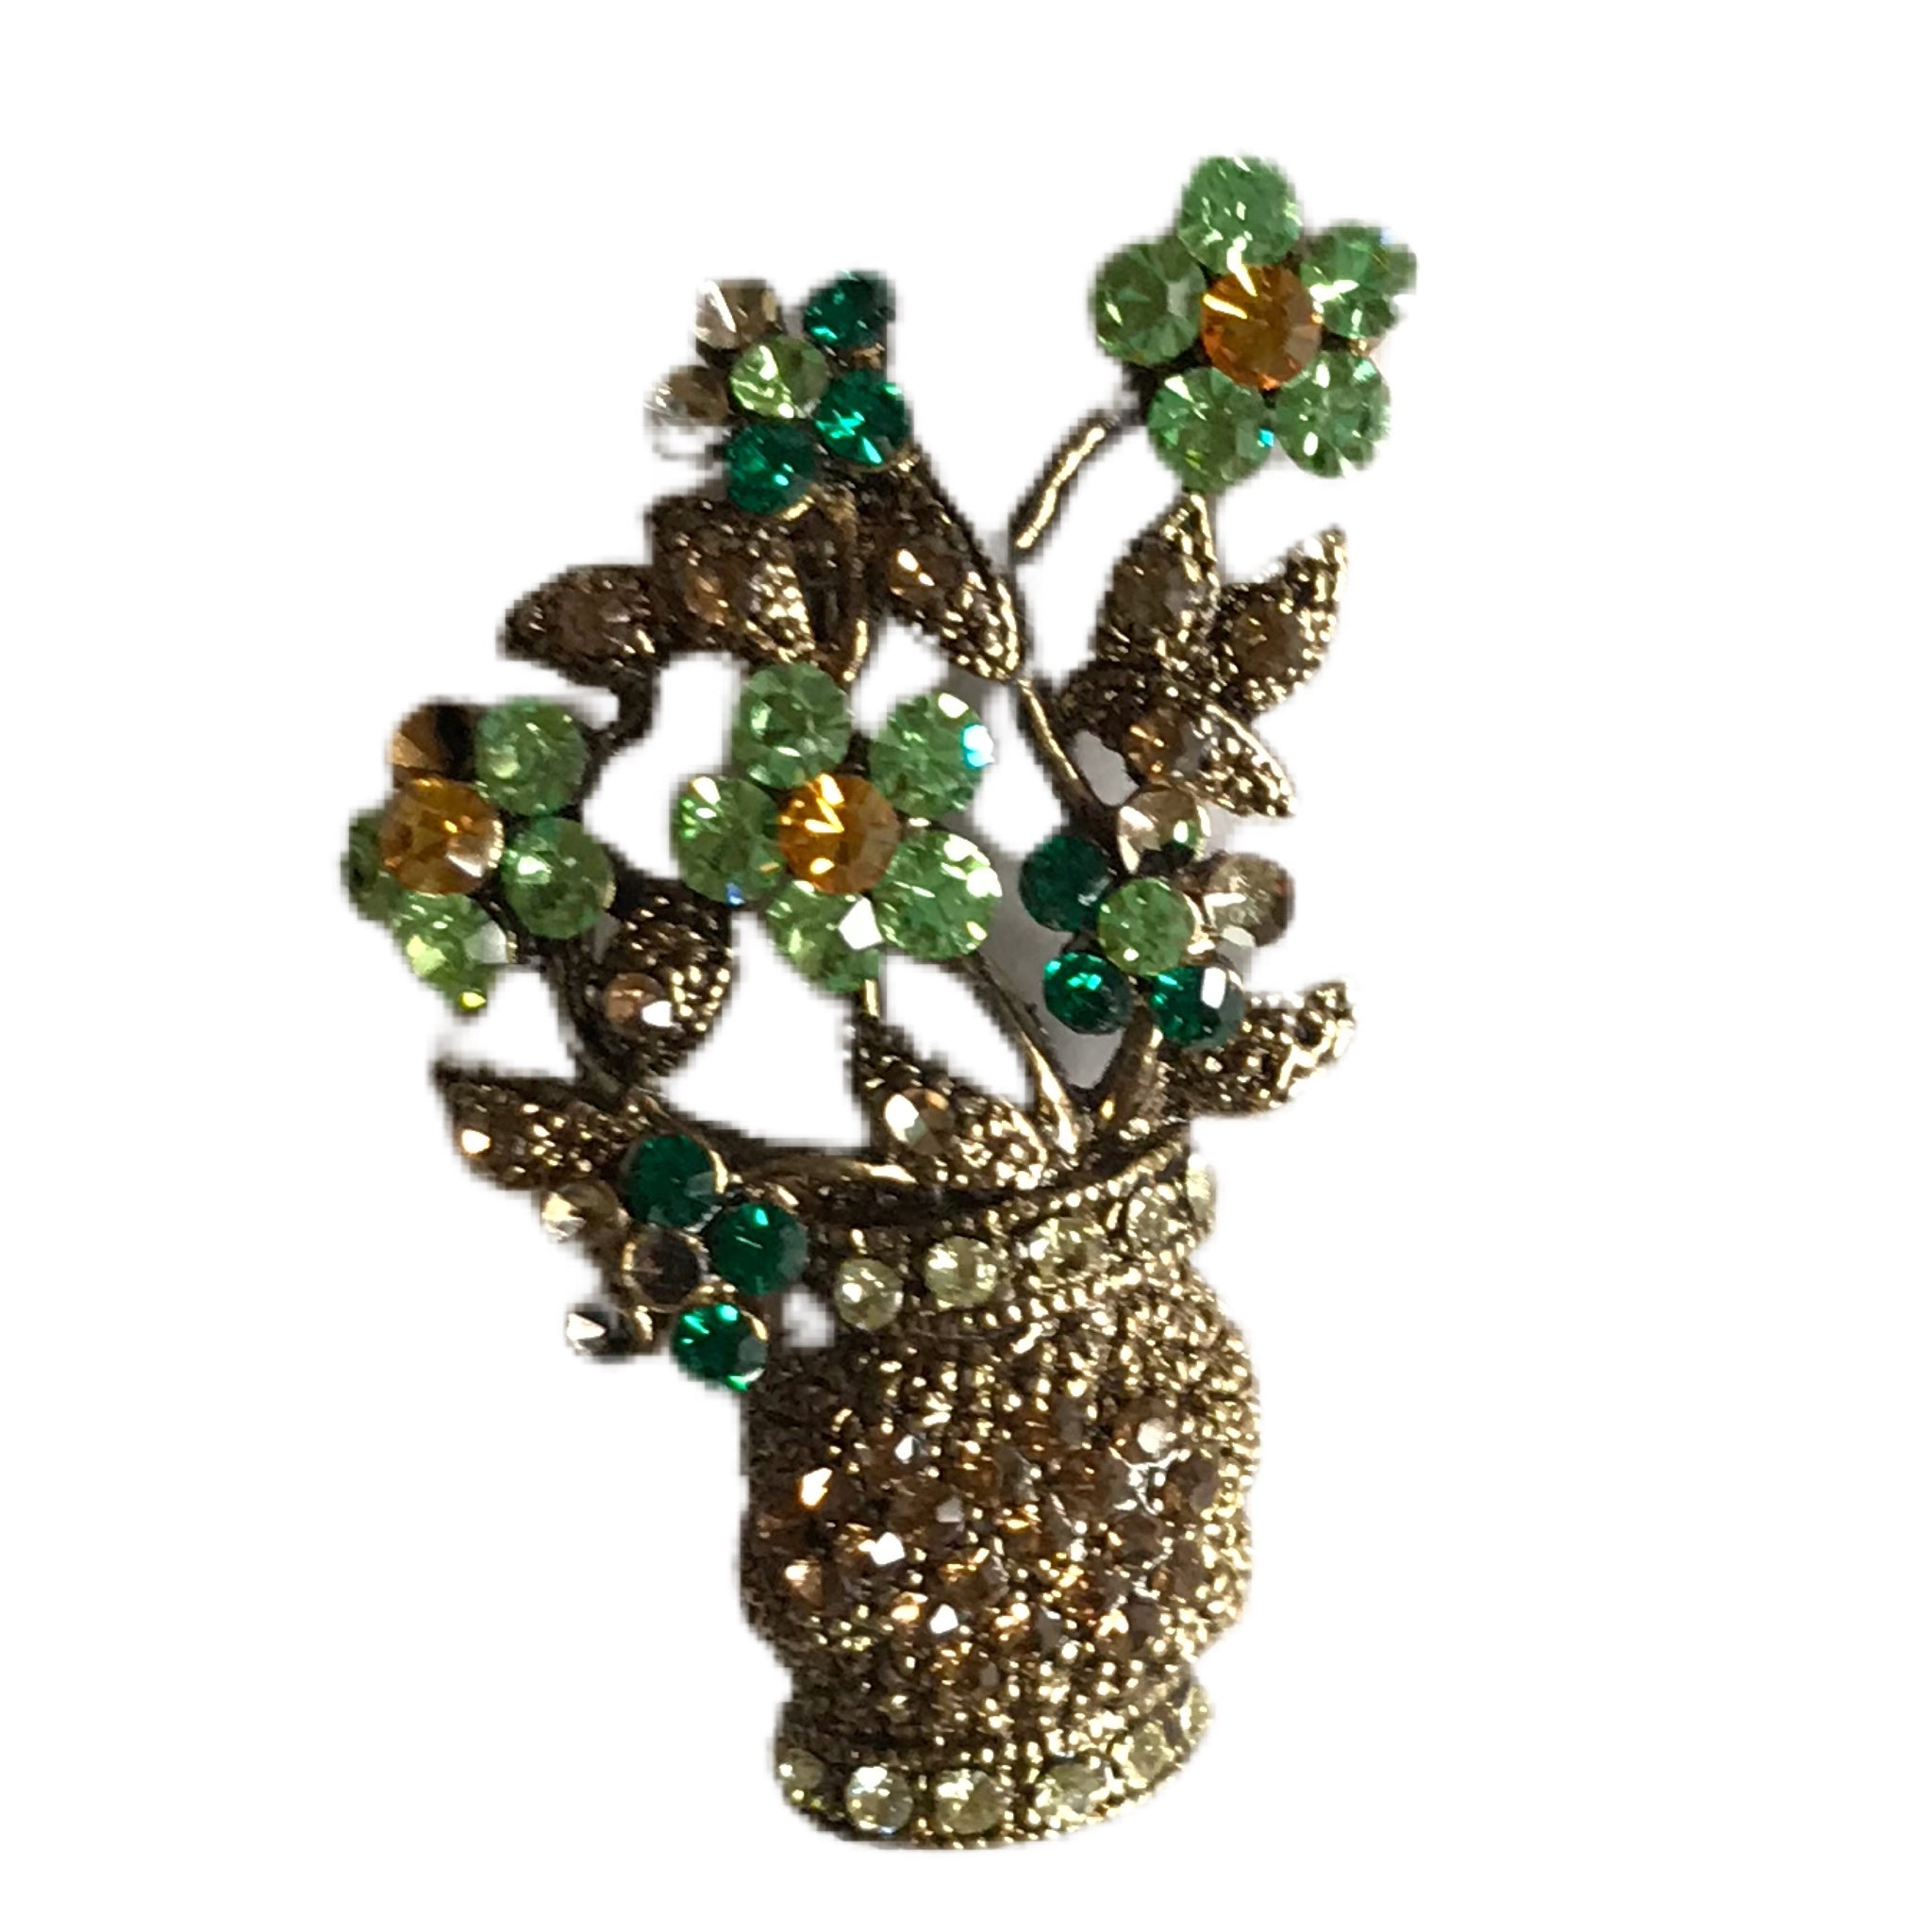 Bright Green Rhinestone Flowers in a Vase Brooch circa 1990s